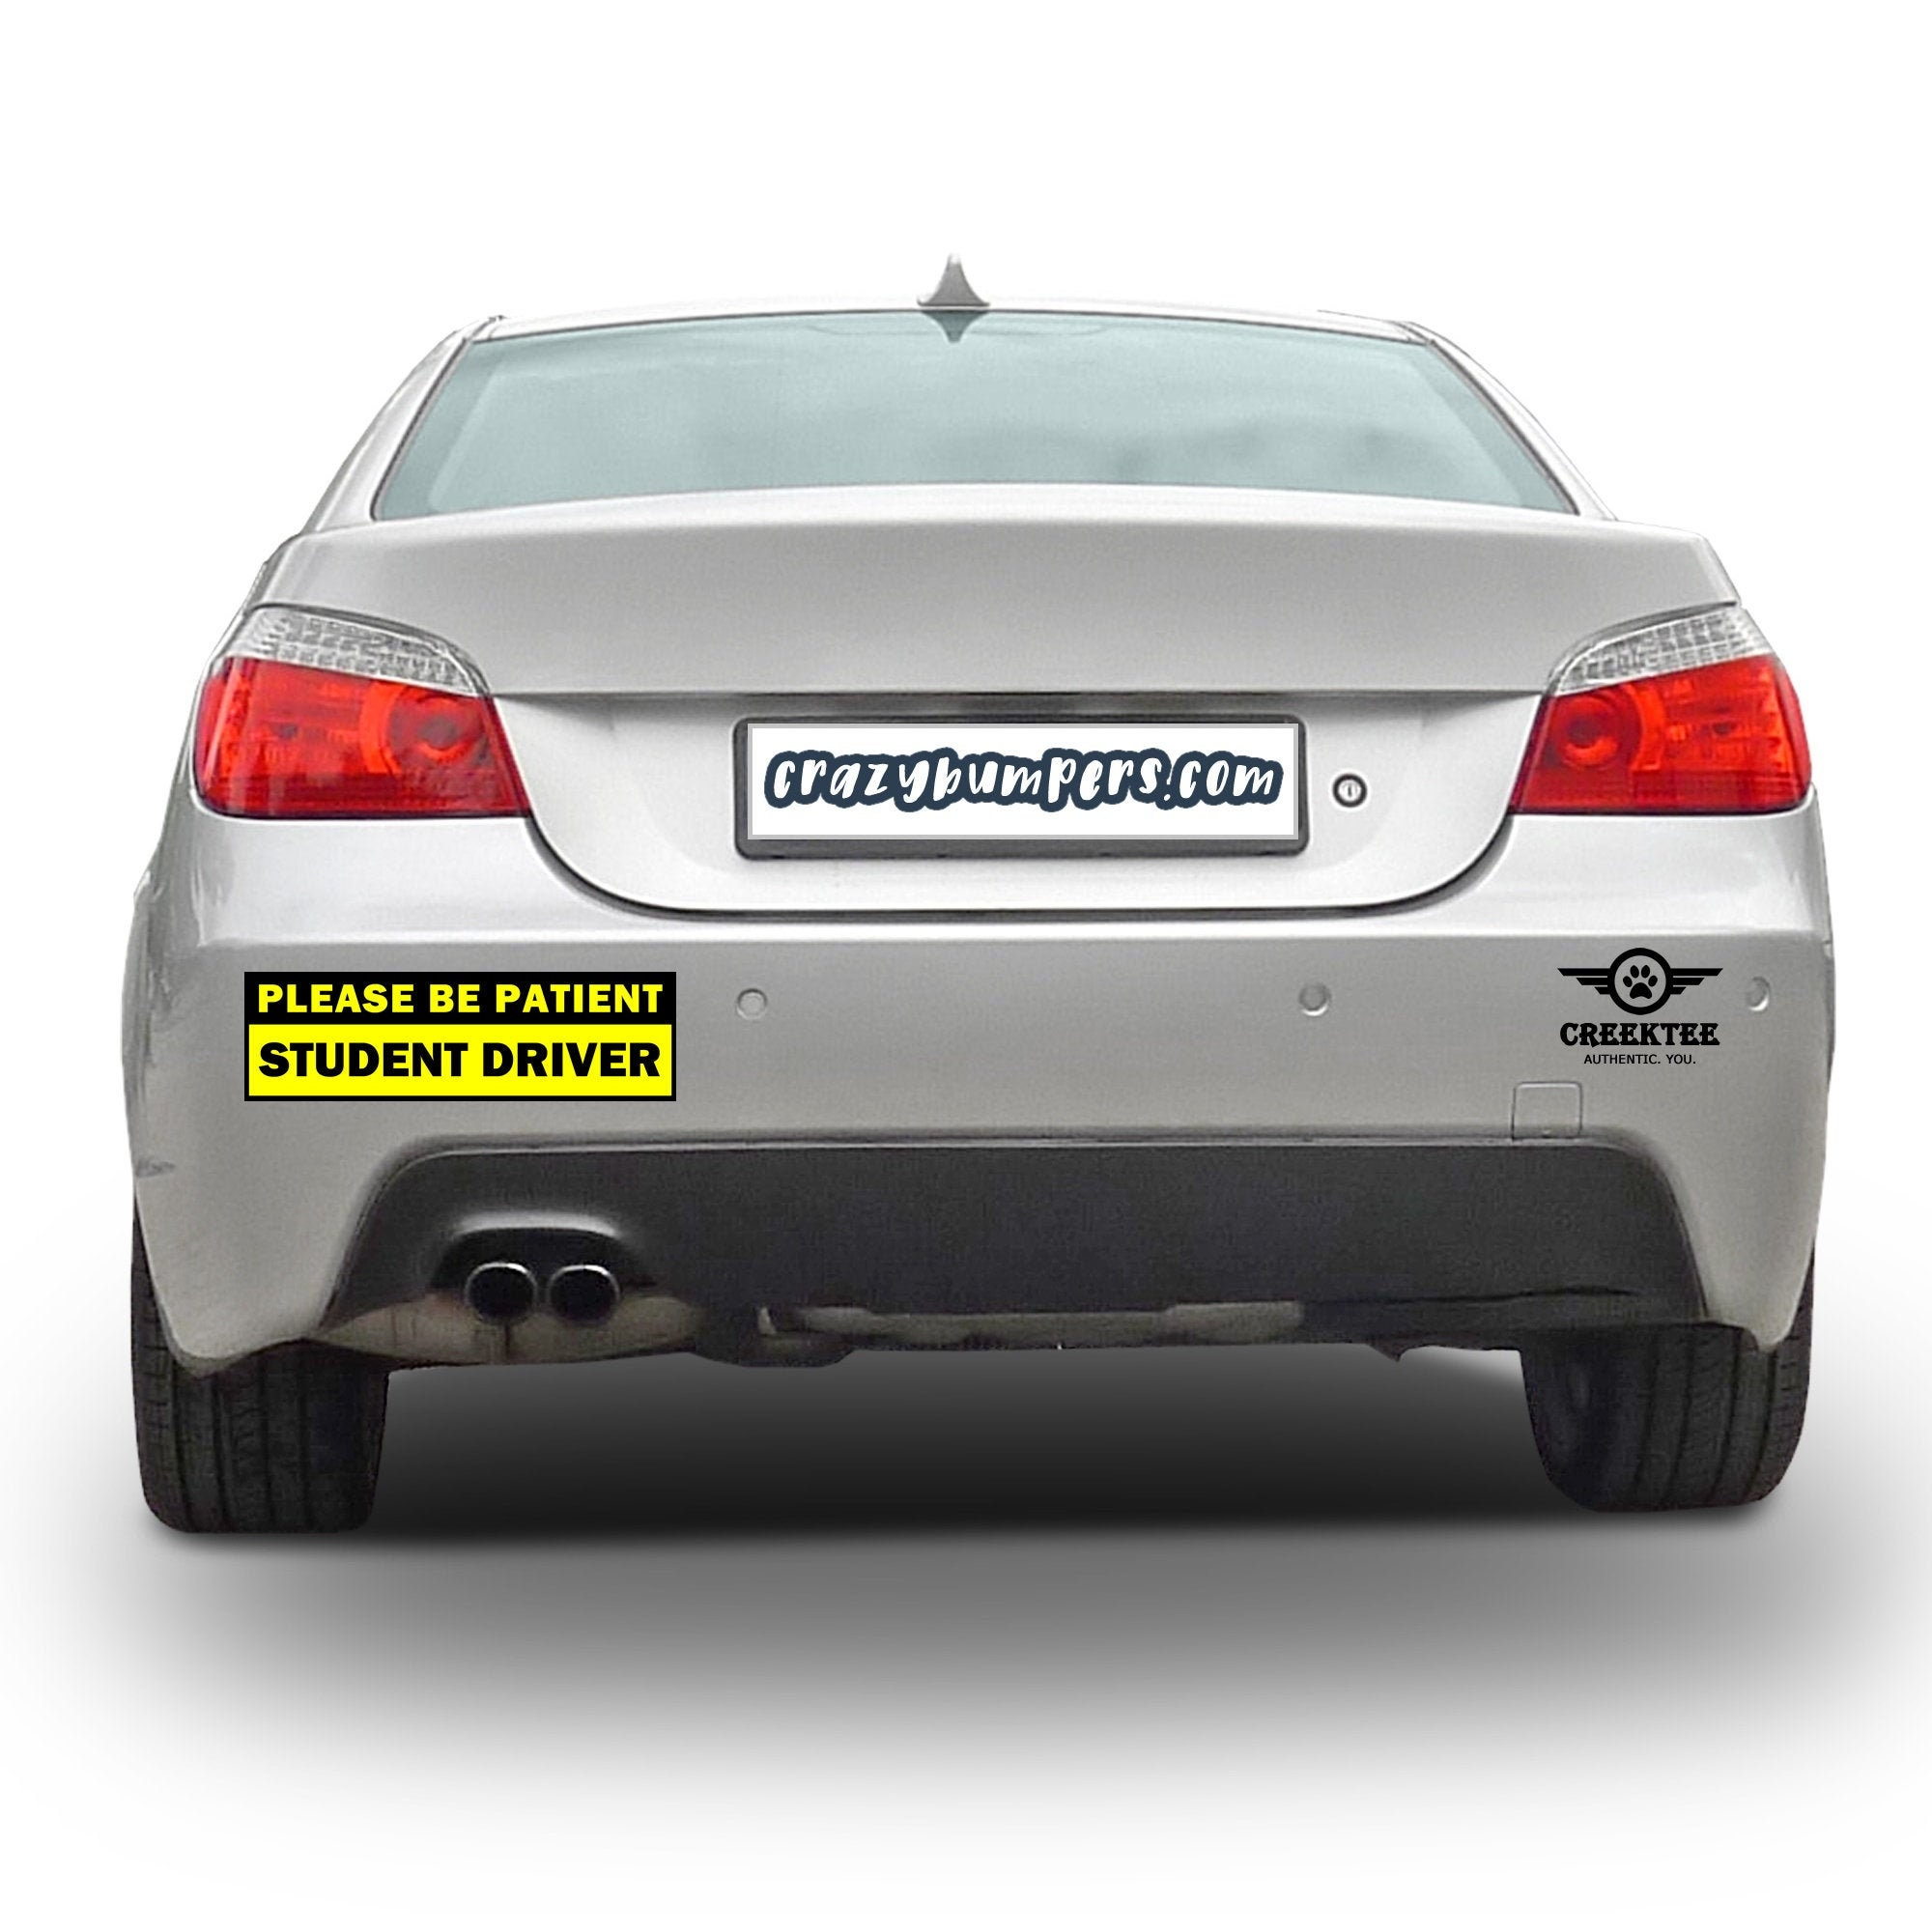 CAD$13.94 - 2X Bundle Please Be Patient Student Driver Bumper Sticker 10 x 3 Bumper Sticker or Magnetic Bumper Sticker Available